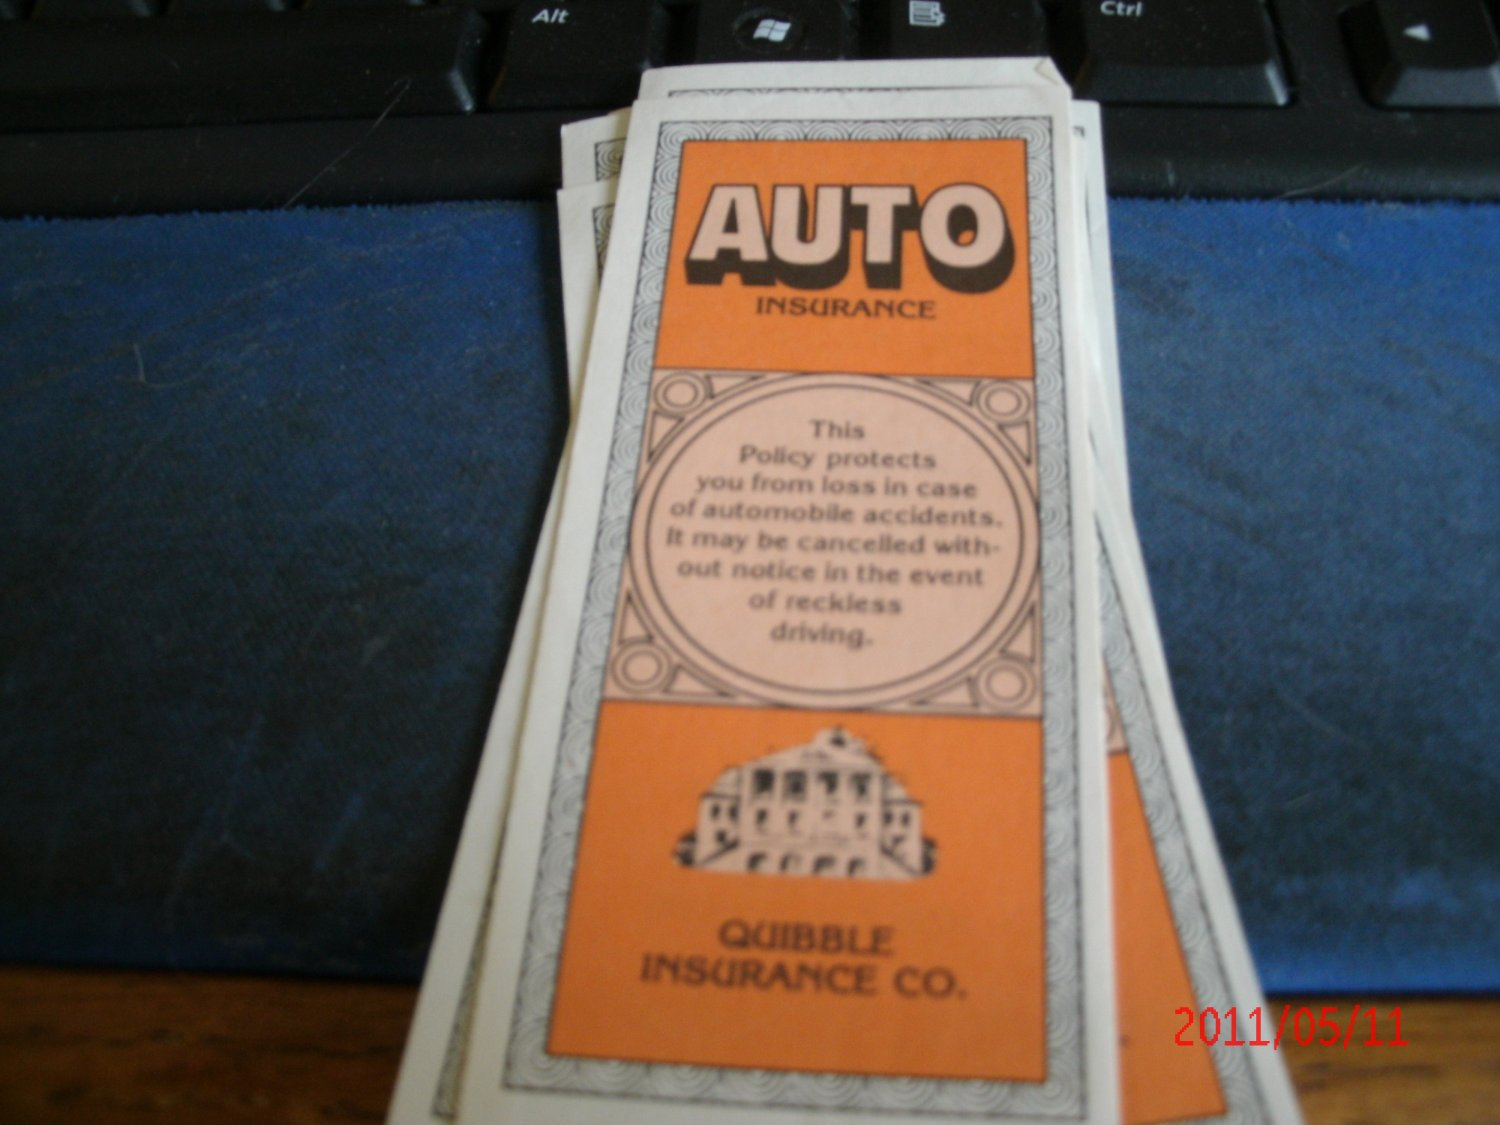 Auto Insurance Online >> 1982 Game of Life - Auto Insurance Certificate